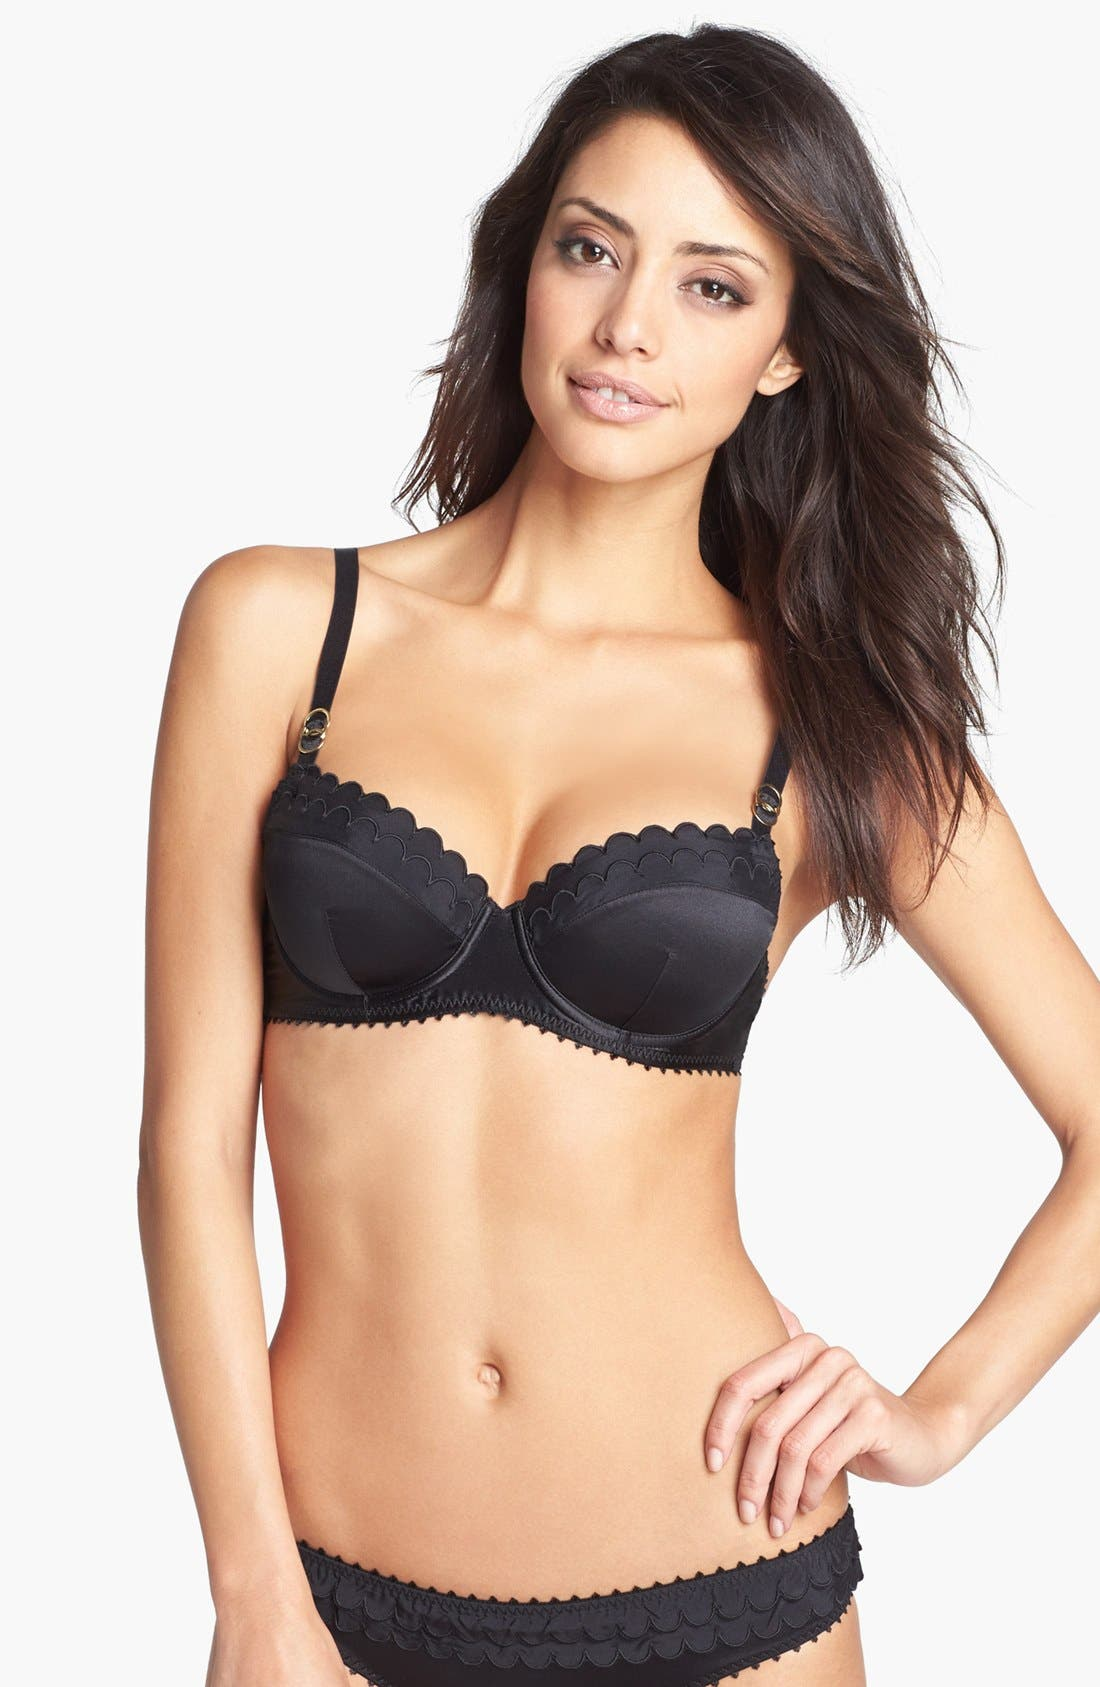 Alternate Image 1 Selected - Stella McCartney 'Becky Smiling' Underwire Balconette Bra